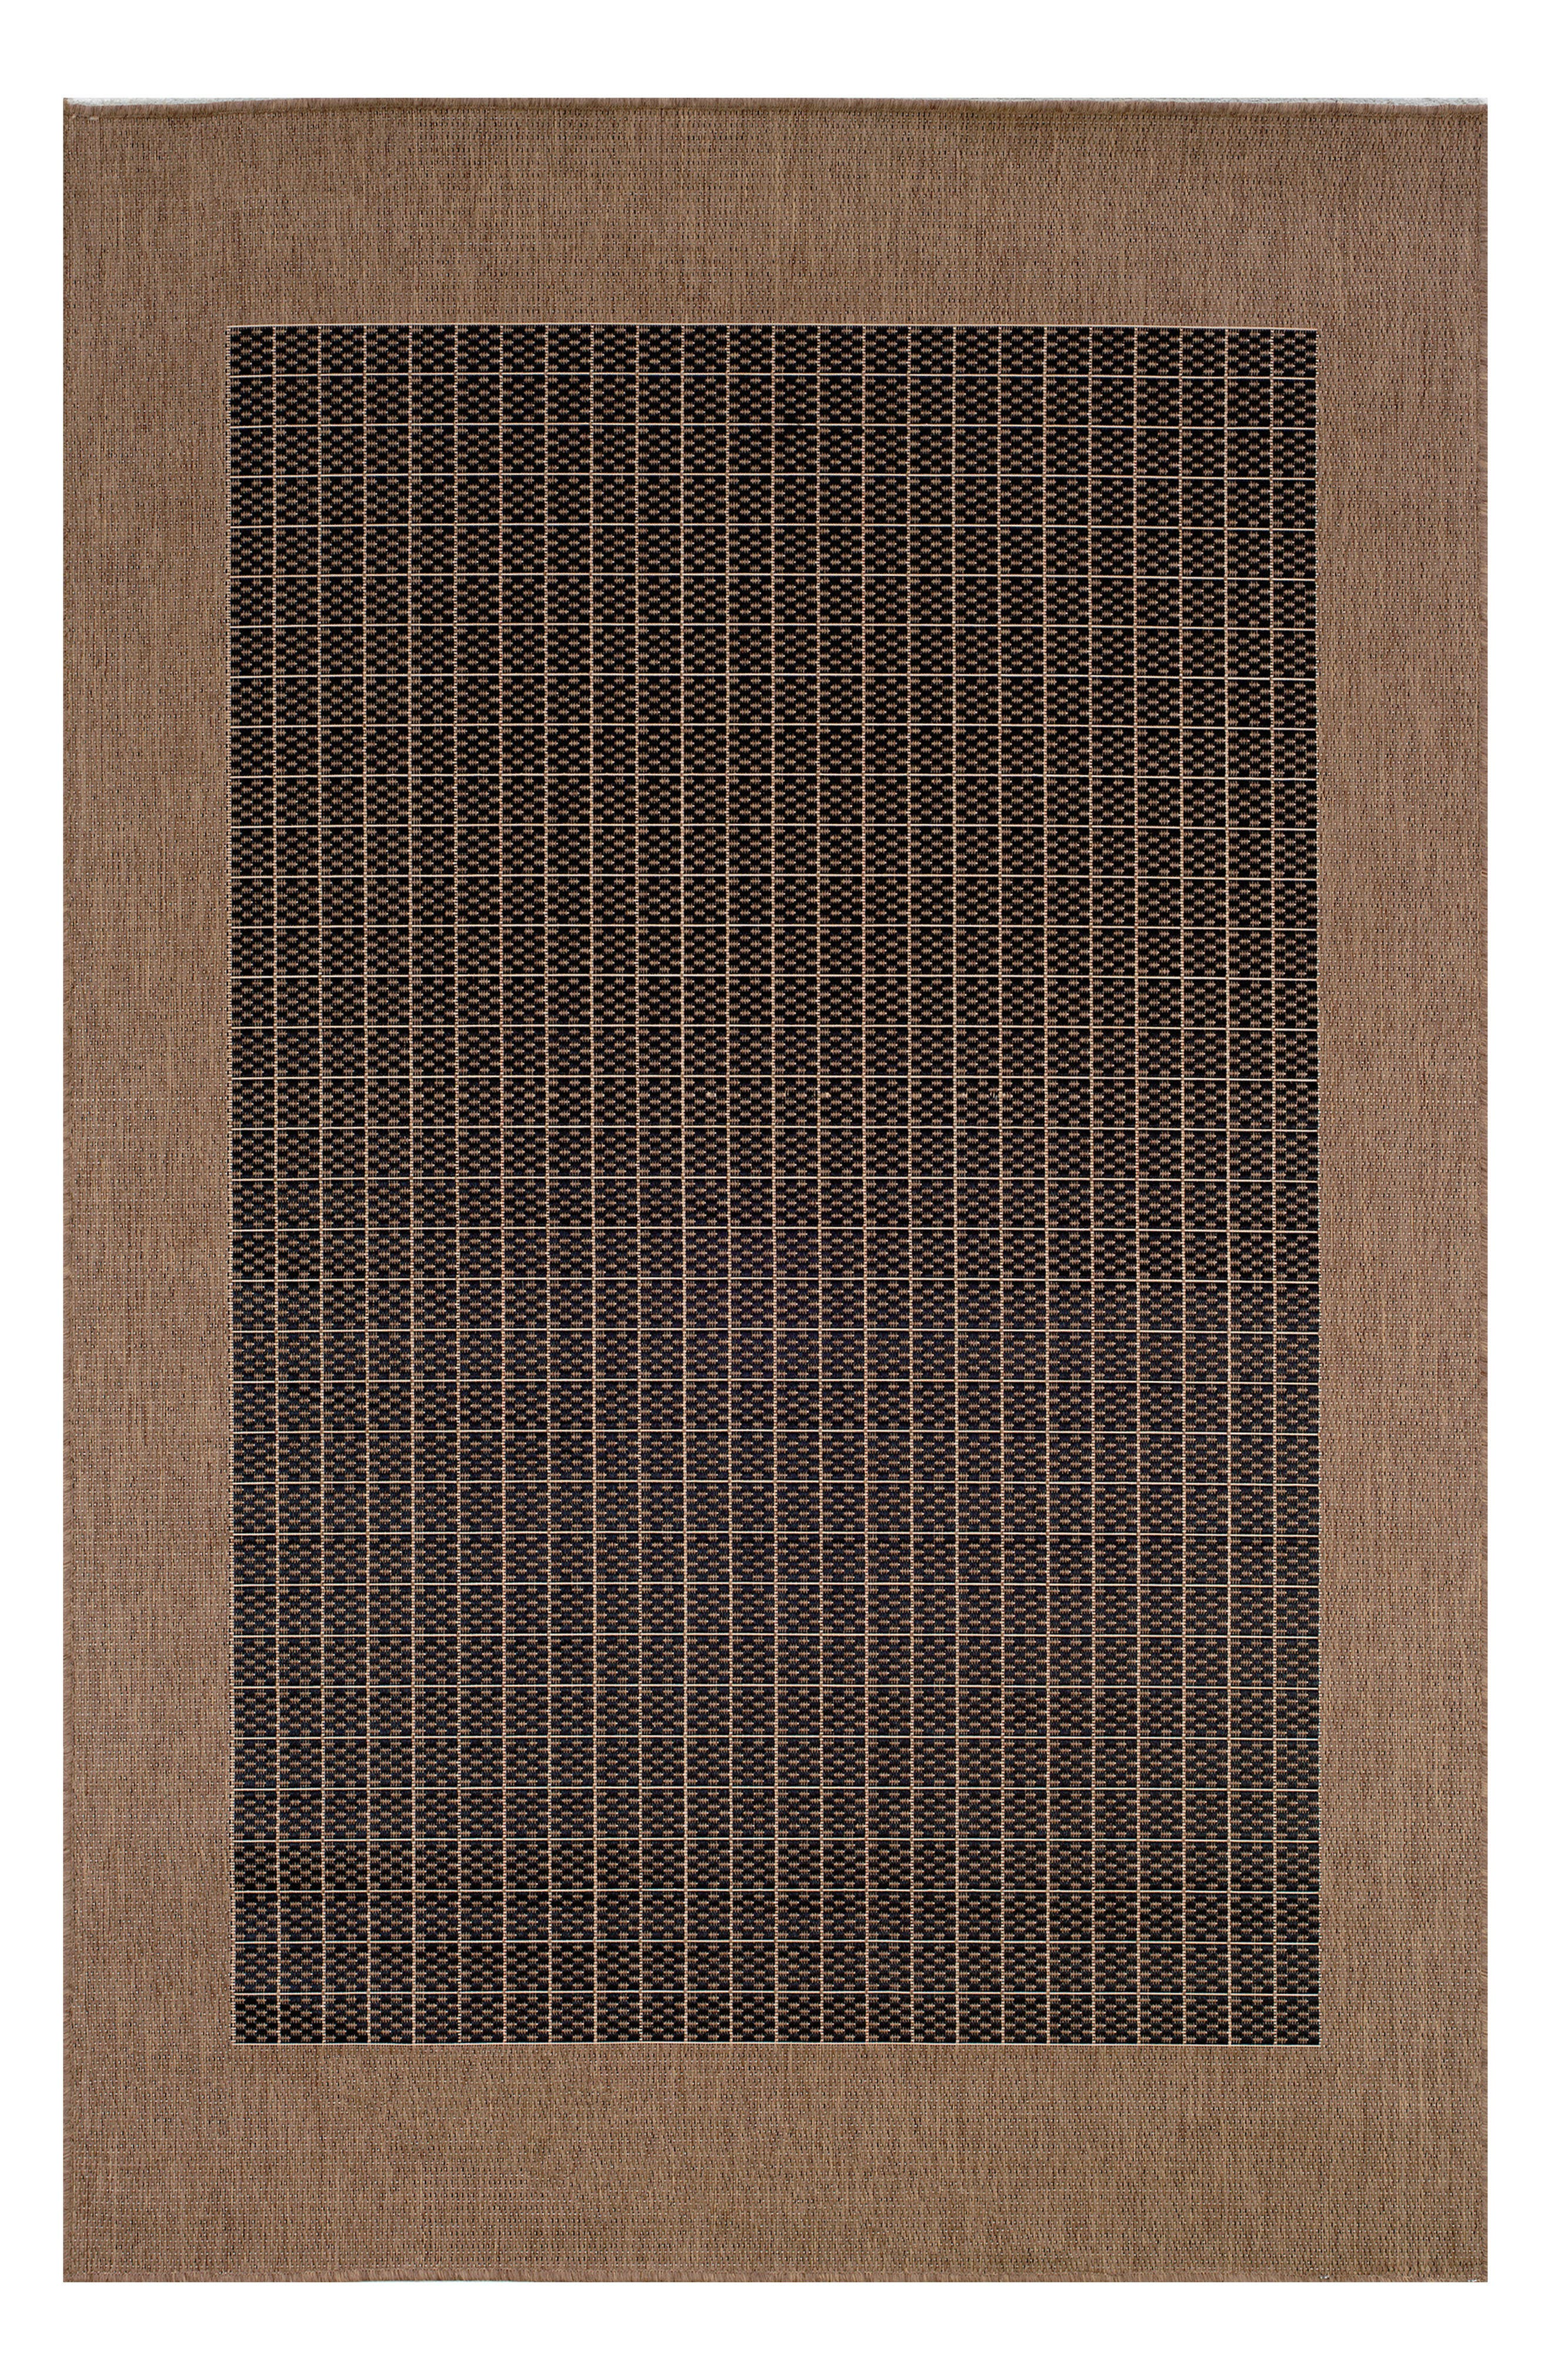 Checkered Field Indoor/Outdoor Rug,                             Main thumbnail 1, color,                             001